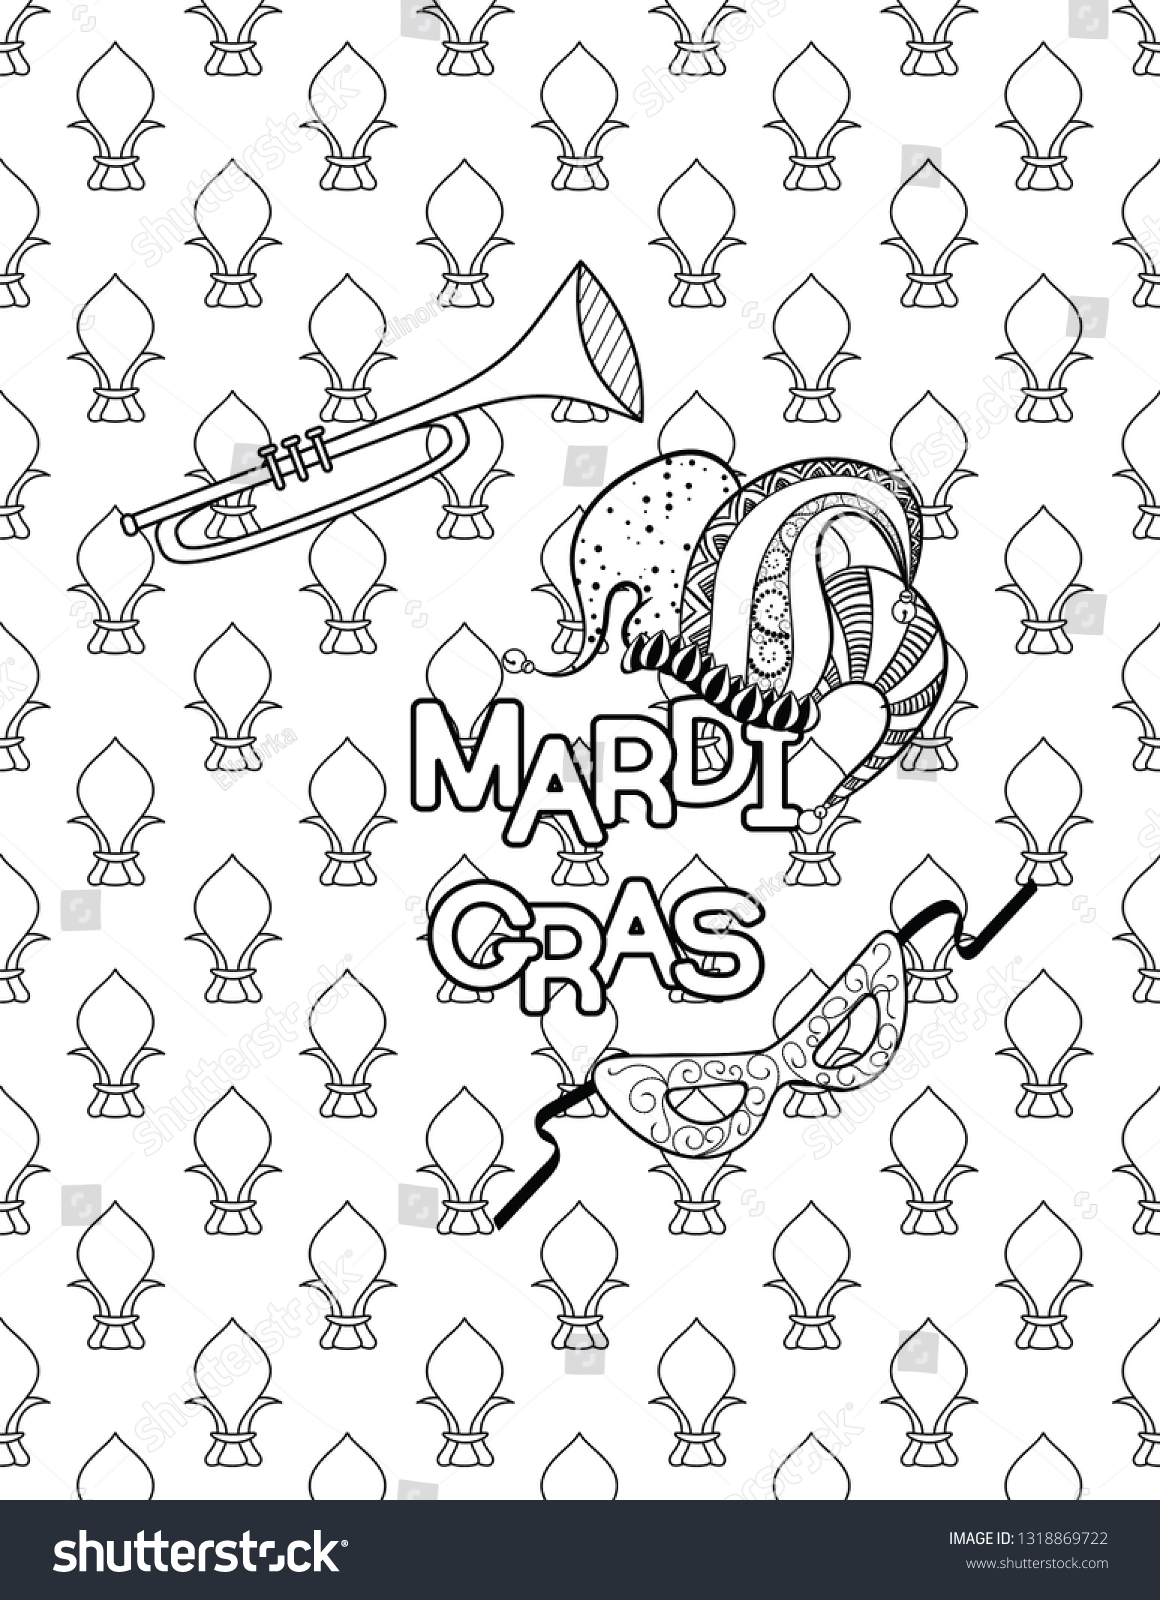 Free Mardi Gras Mask Coloring Pages, Download Free Clip Art, Free ... | 1600x1160